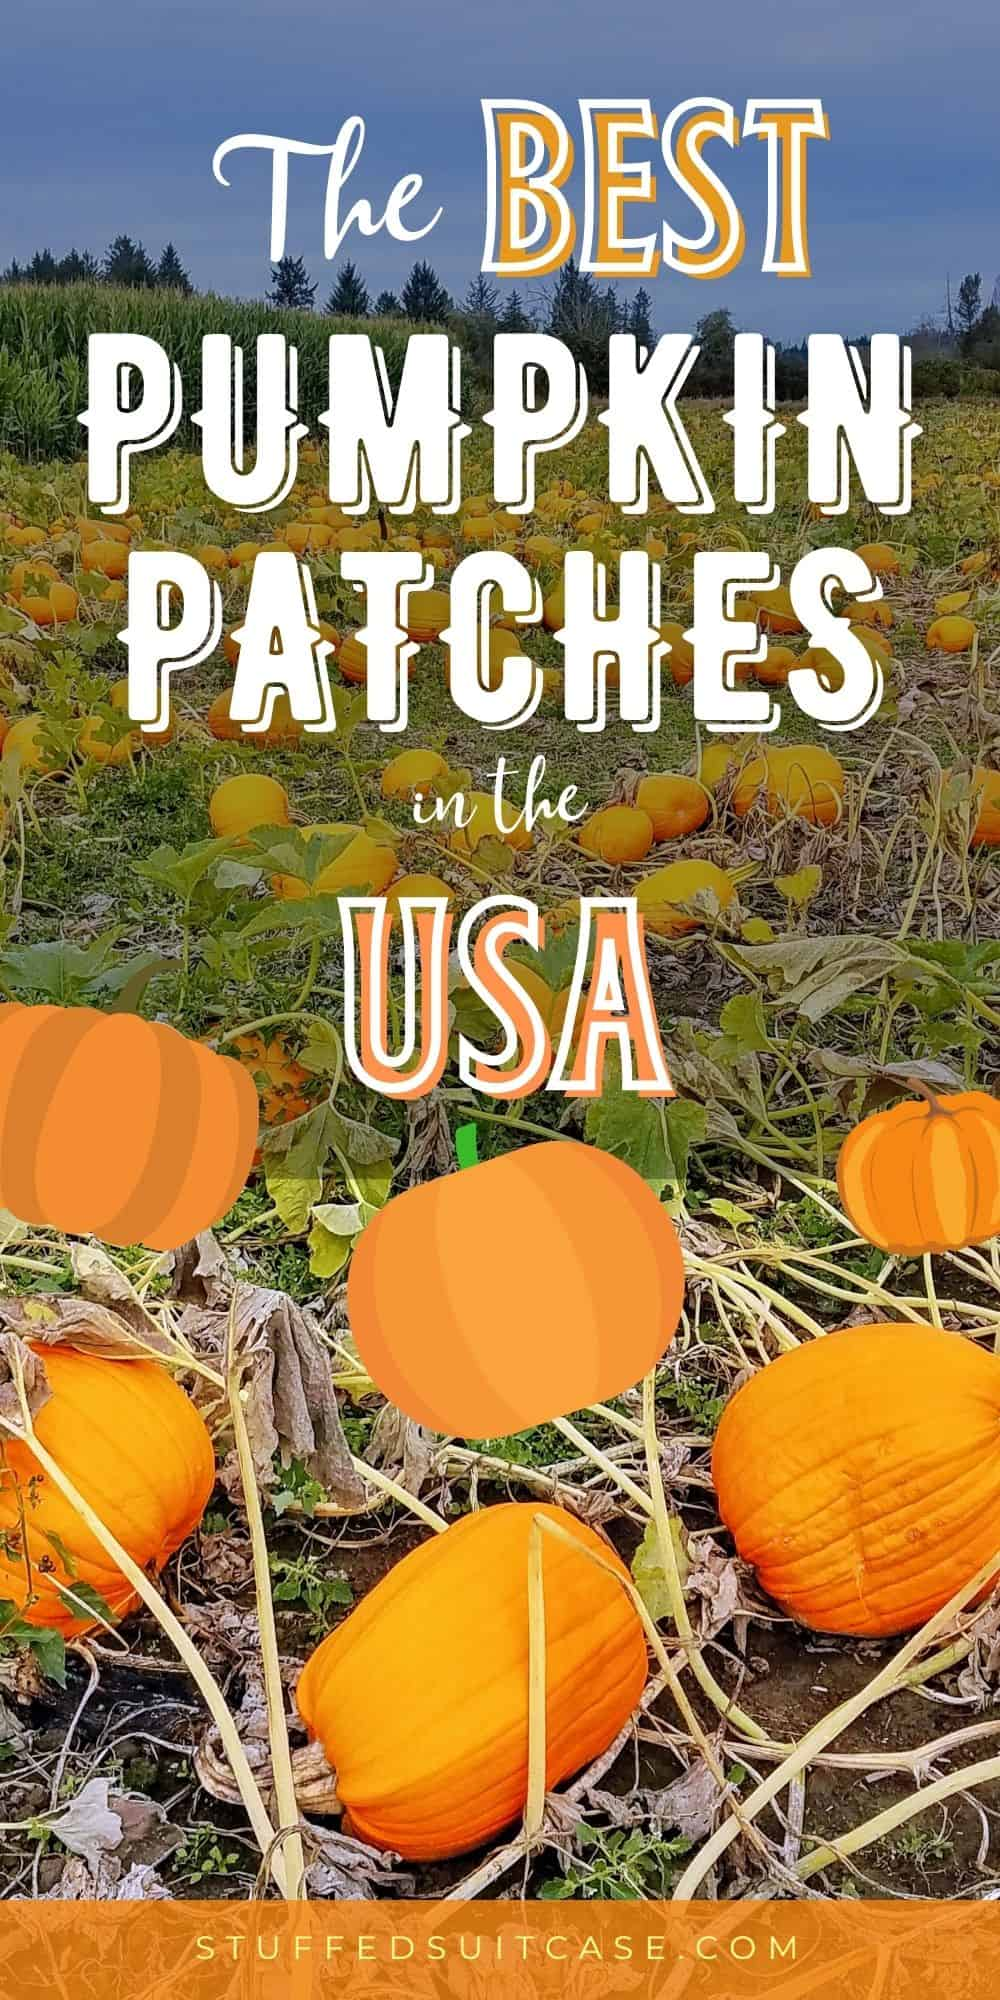 best pumpkin patches pinterest image pumpkin field with text